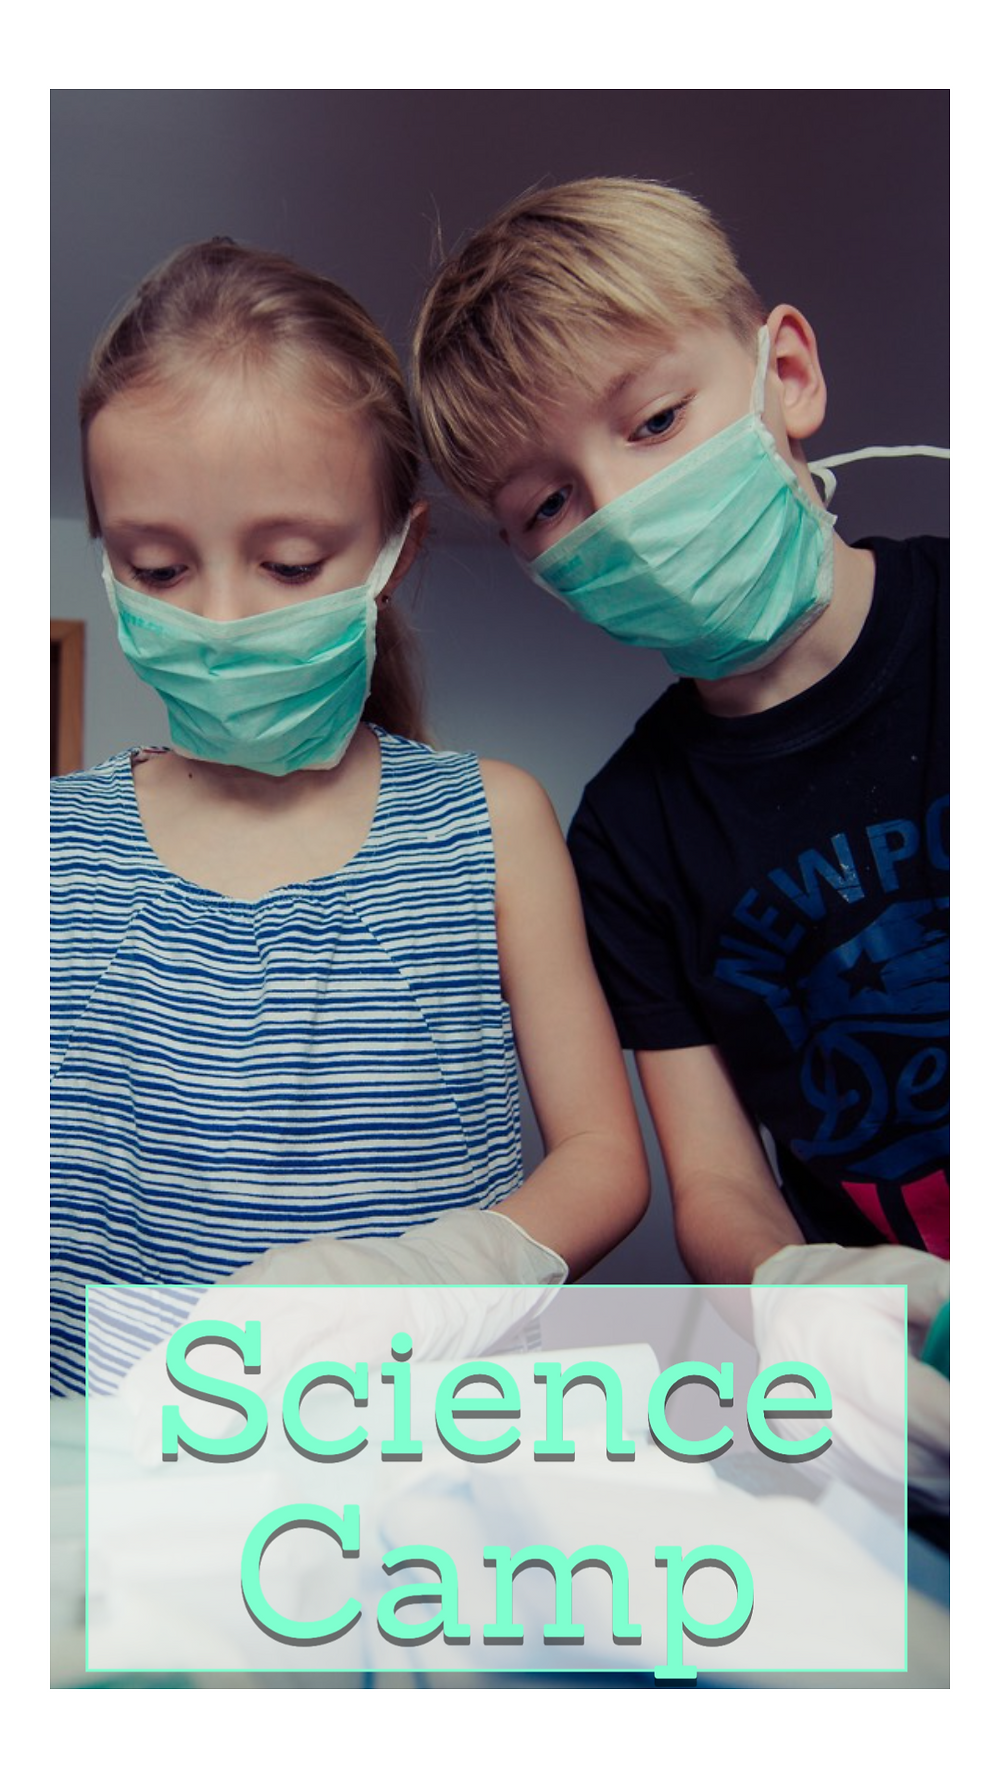 Social media story template for kids camp and science camp with two kids wearing face masks